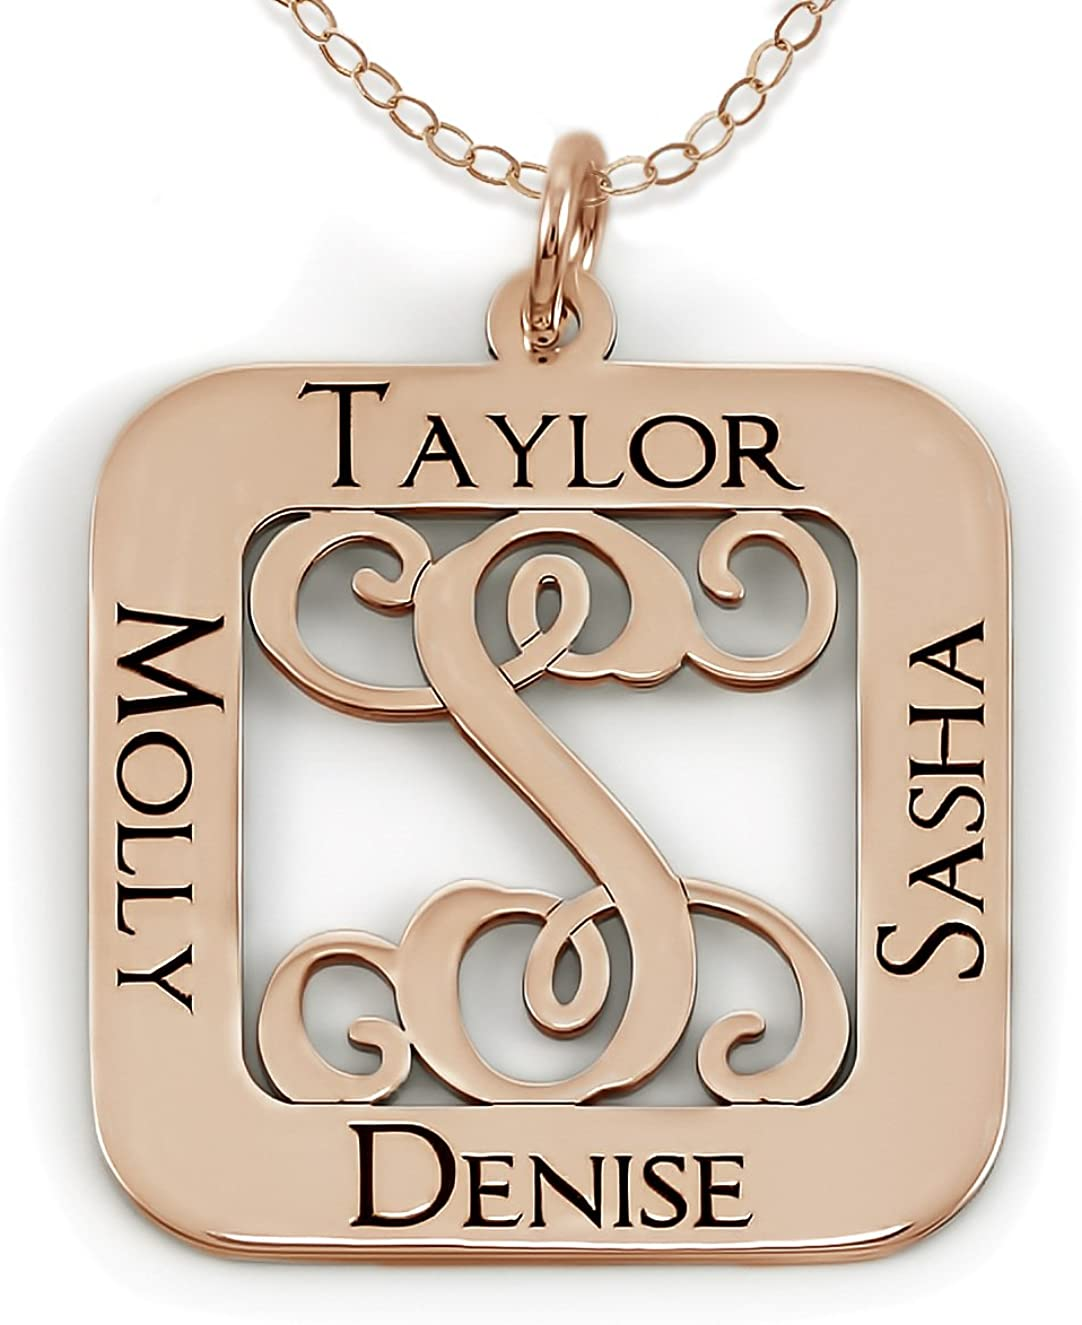 Square Cut Sterling Silver Script Initial and Name Pendant Necklace Choice of Chains Sterling Silver Personalized Center Monogram and Names 14k Gold Plate or Rose Gold Plate over Sterling Silver